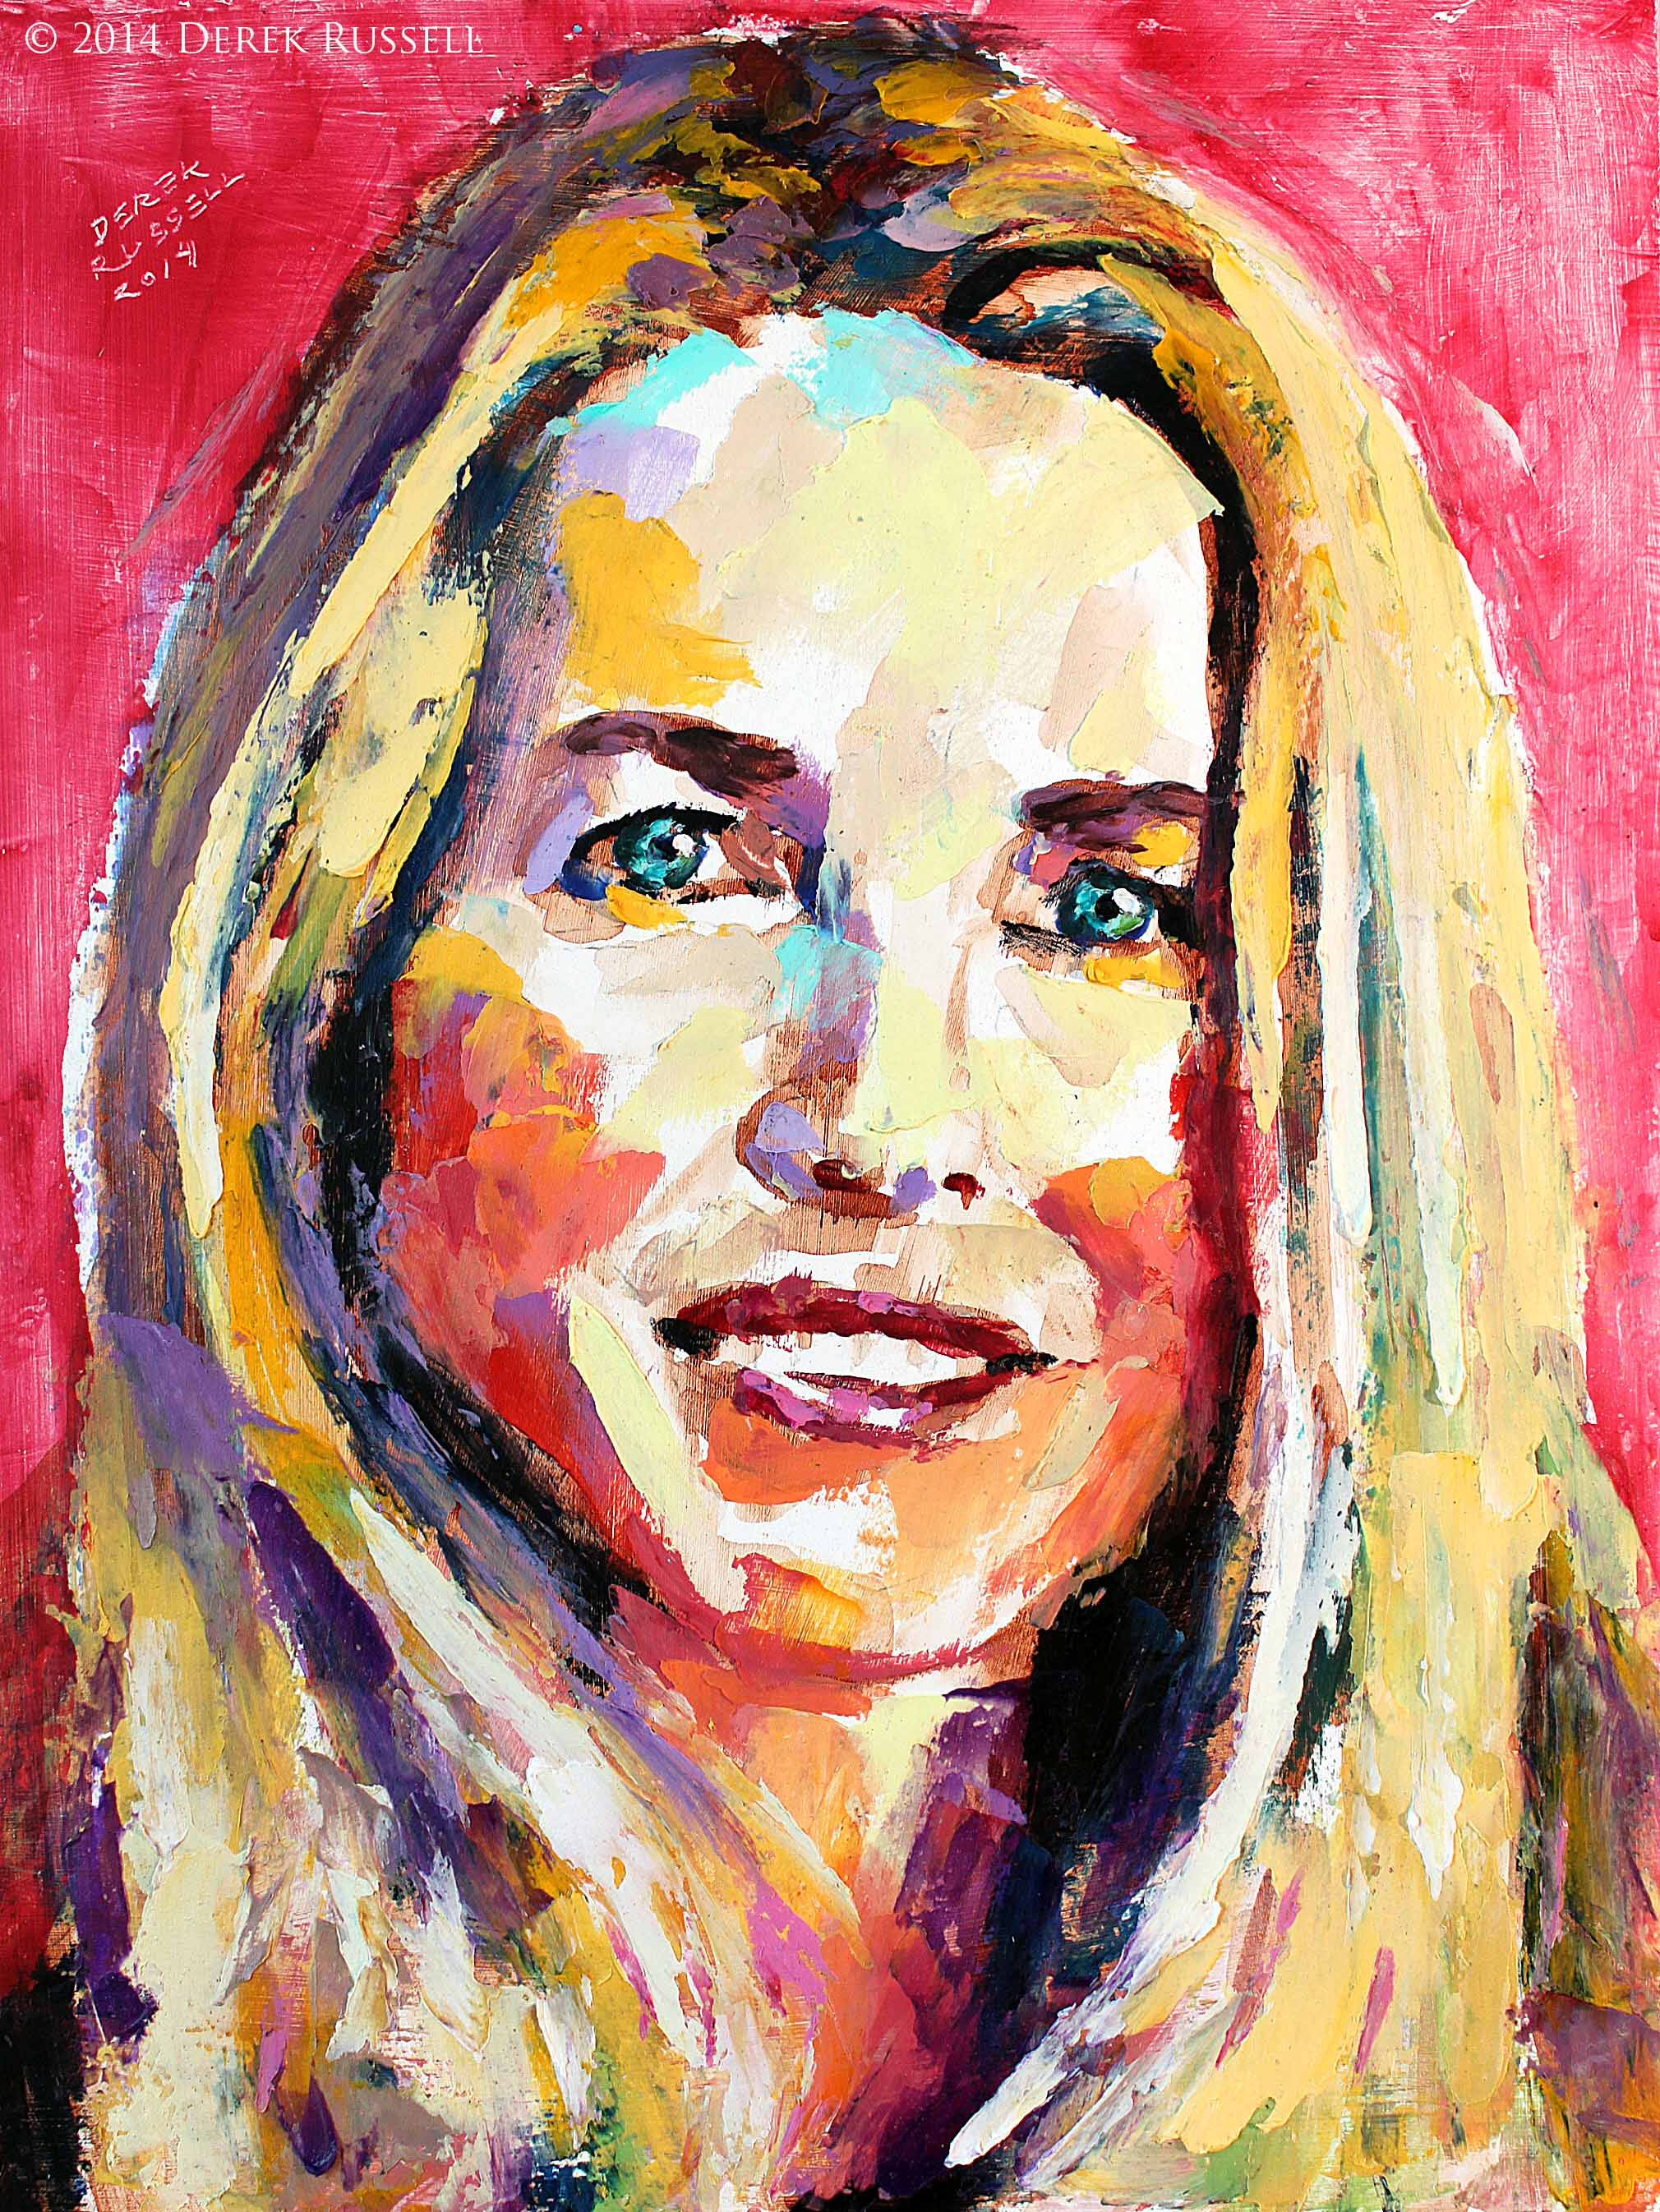 Laurene Powell Jobs Original Portrait Pop Art Painting by Derek Russell